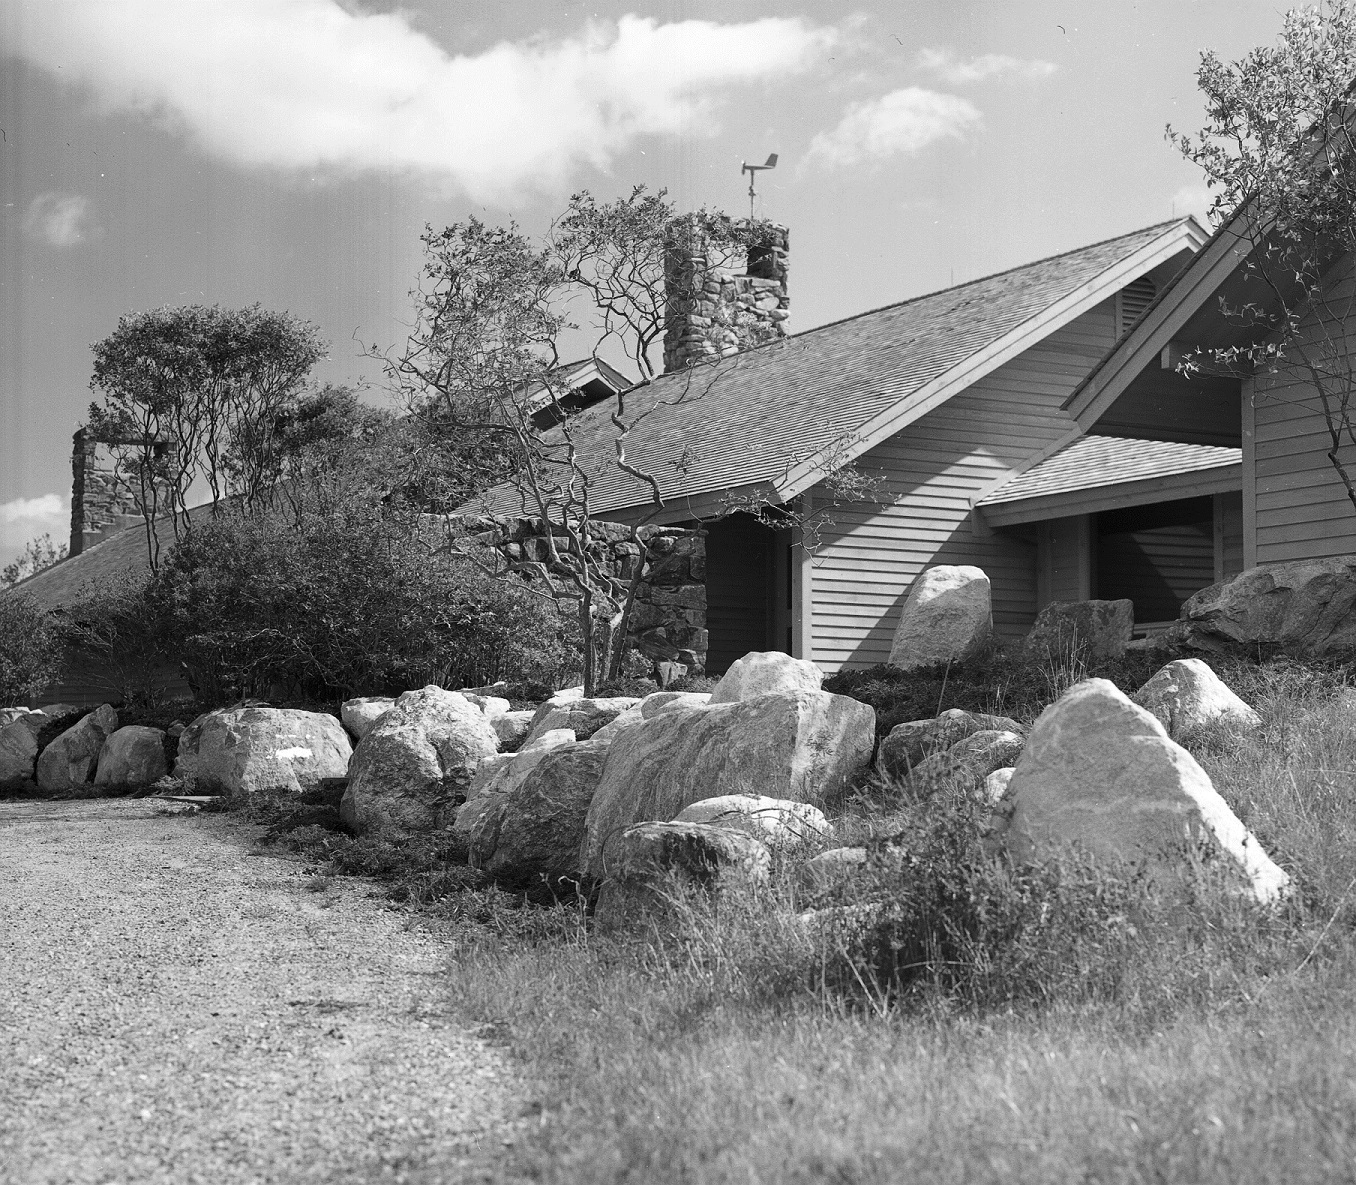 driveway leading to a house with trees and large boulders arranged in front of it